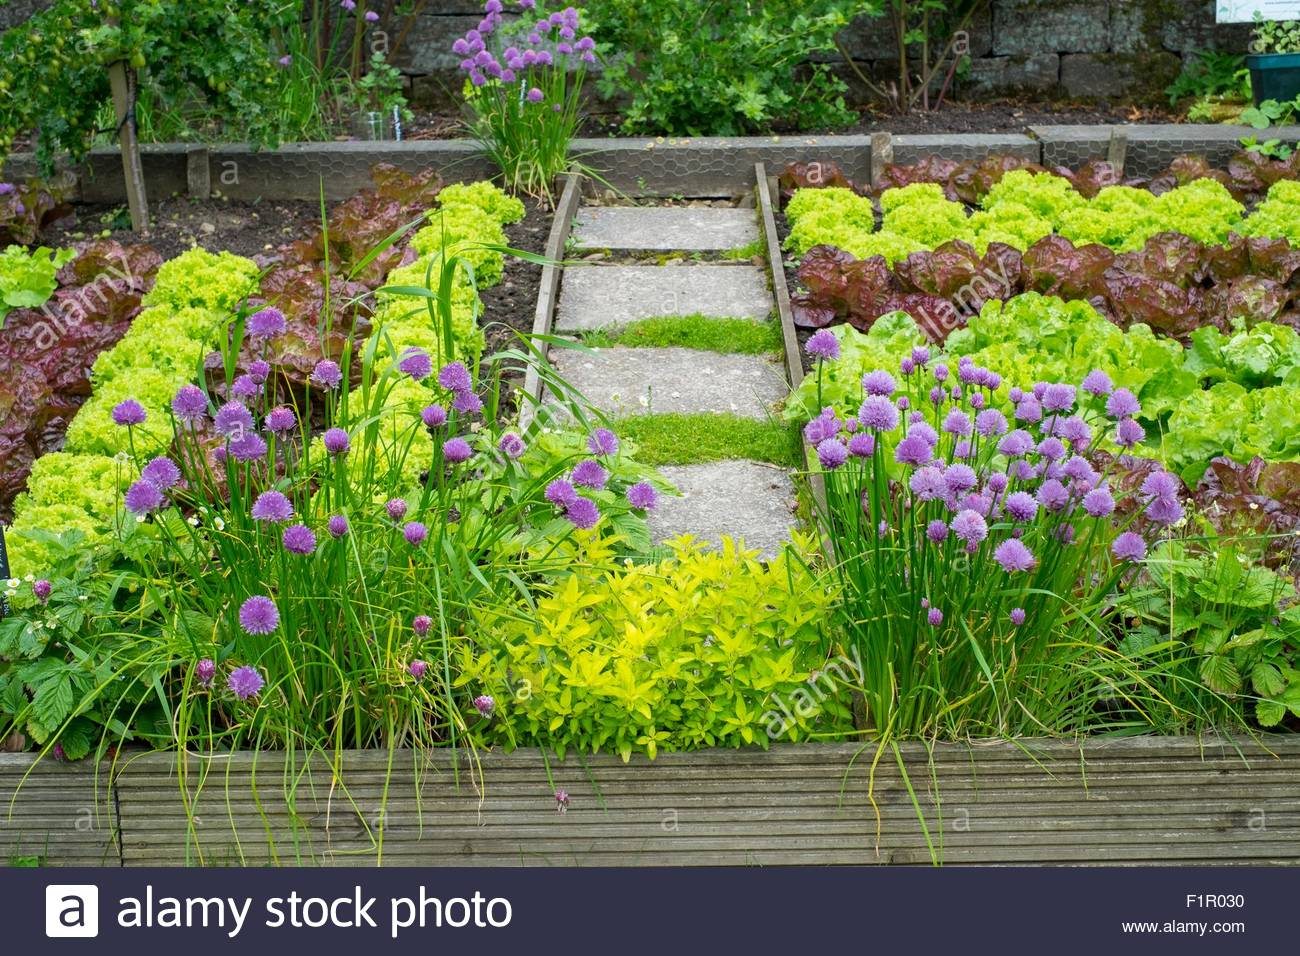 Summer salad vegetable plot with various lettuce varieties, chives and strawberries. - Stock Image